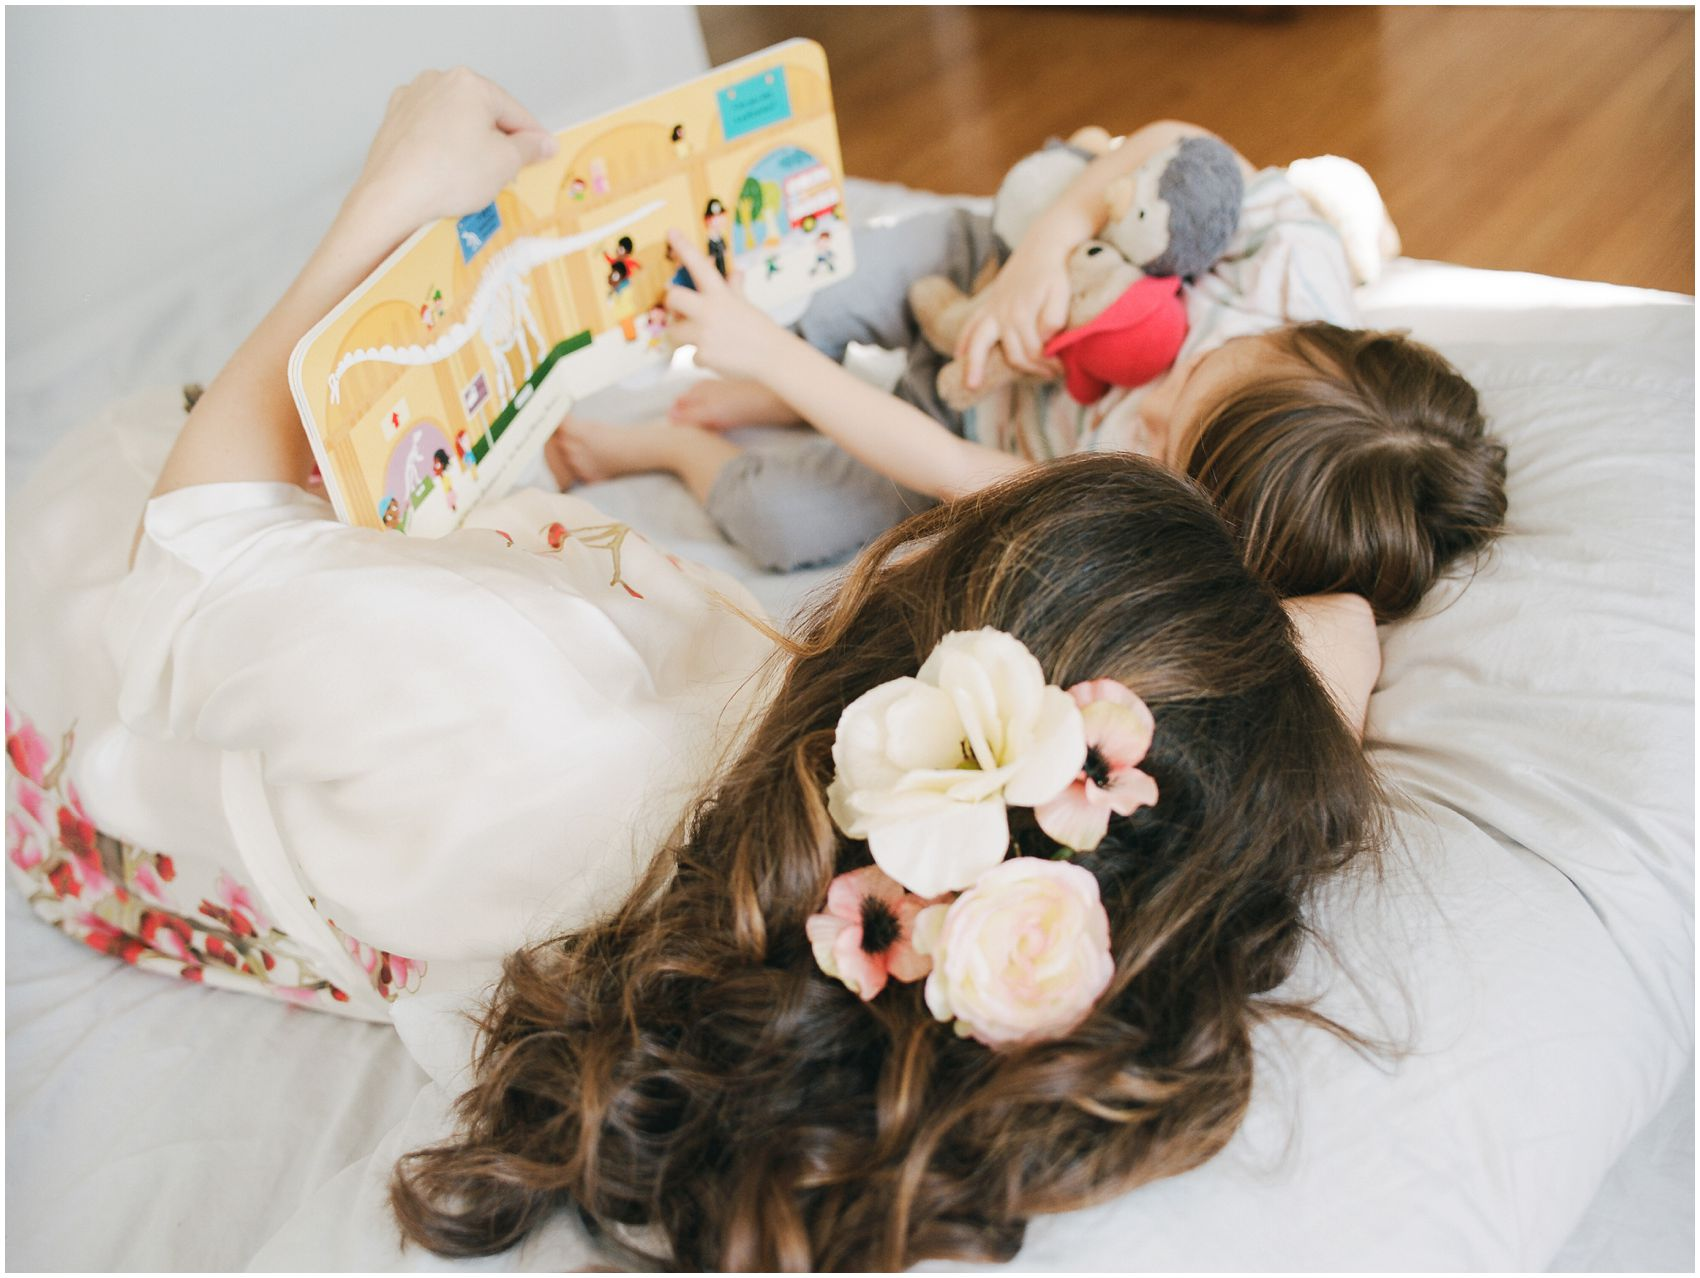 beautiful hair flowers for mom reading a book with her son in bed